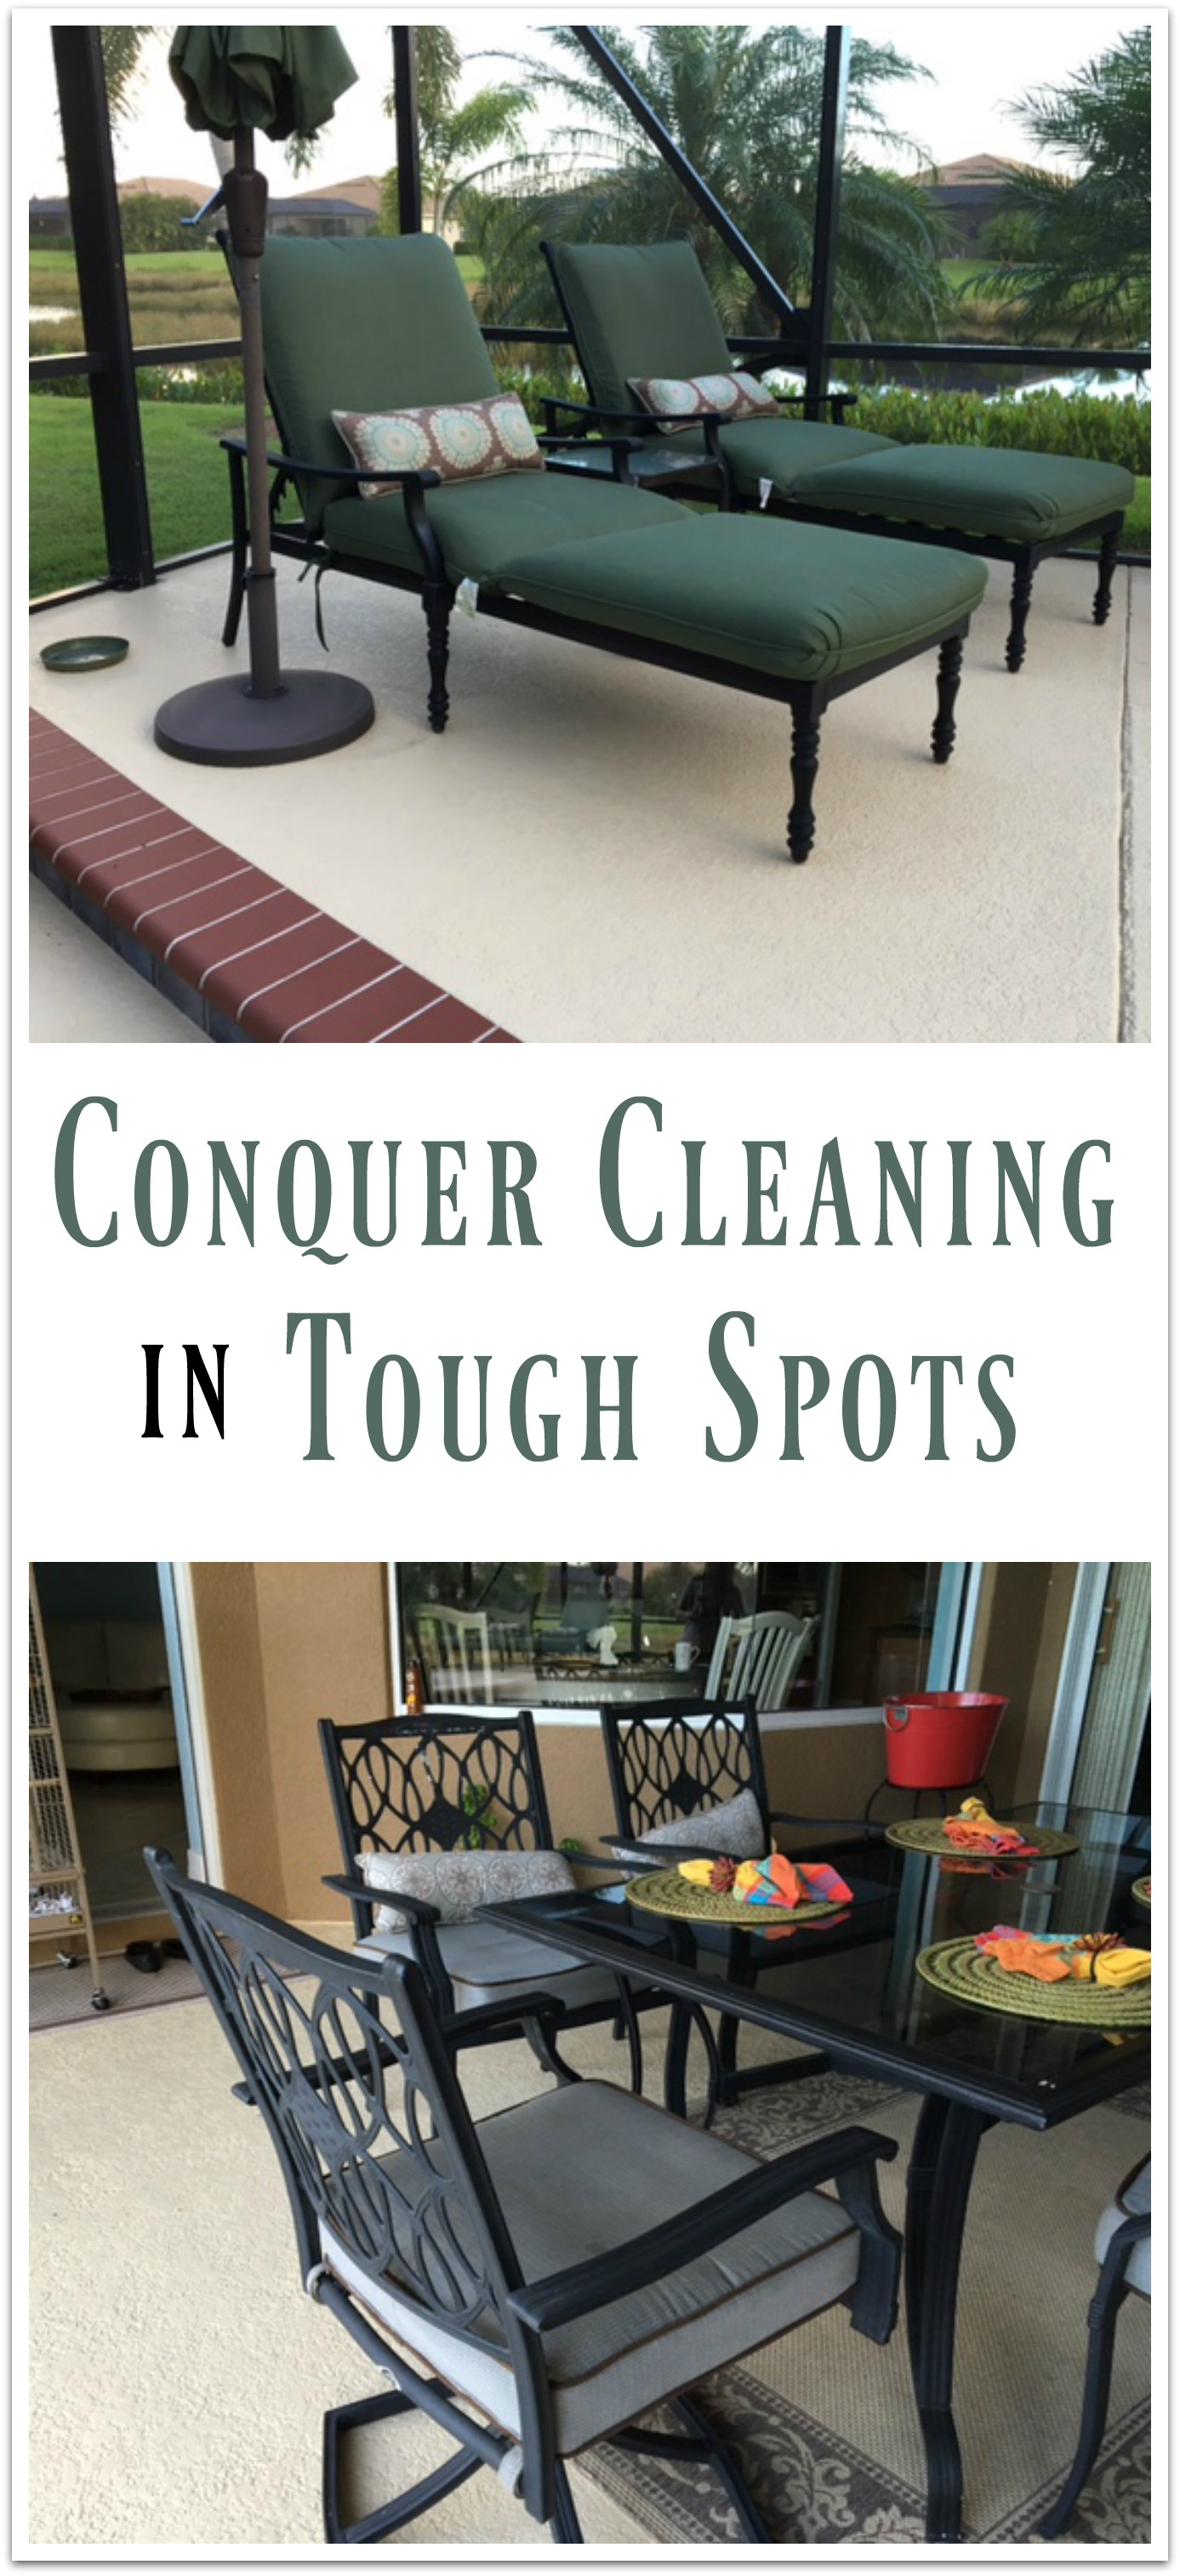 Biz Stainfighter Conquer Cleaning in Tough Spots Food Fun